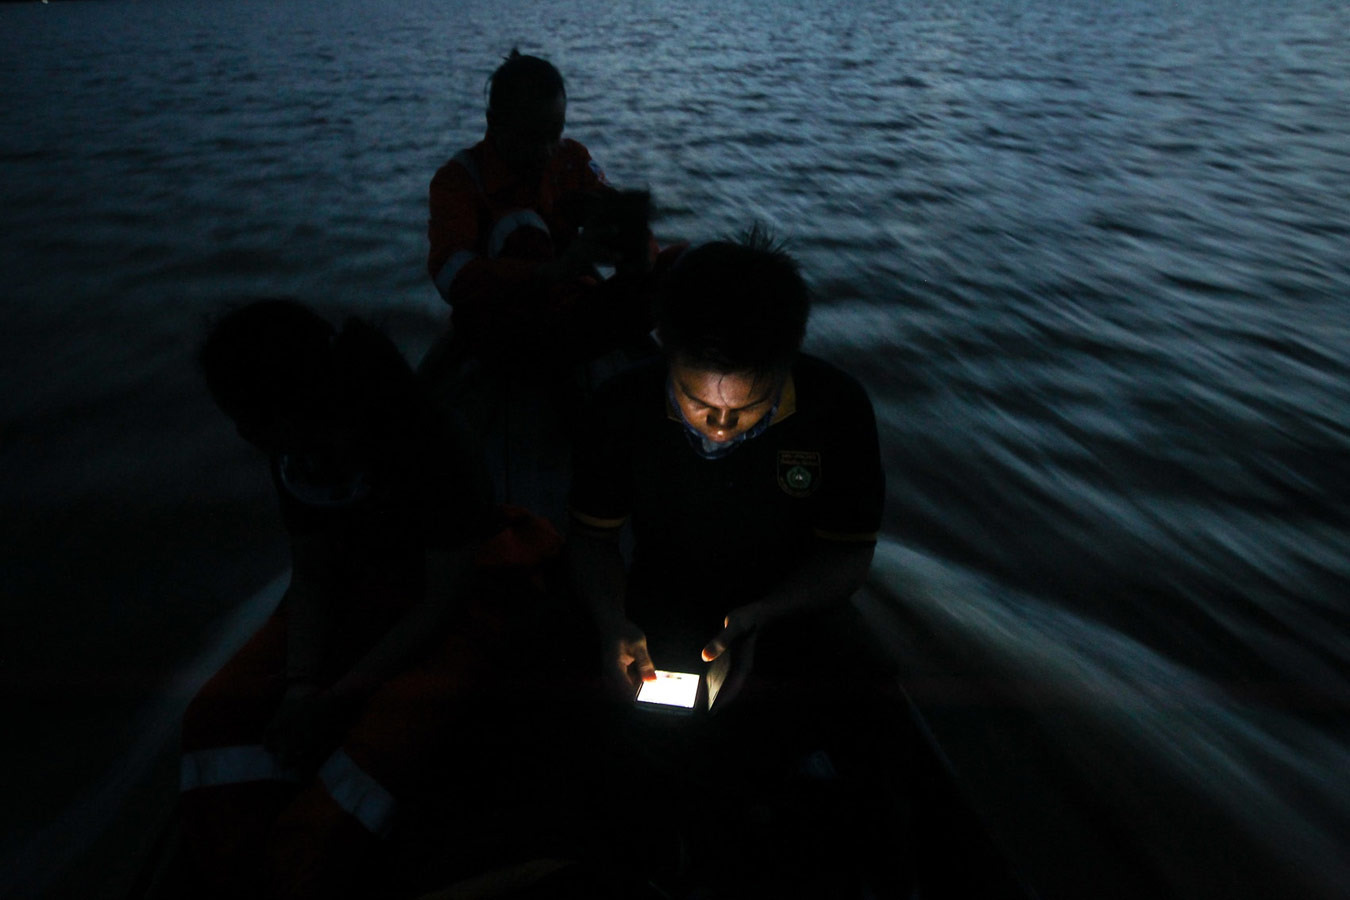 Fish Finder, © Afriadi Hikmal, Indonesia, Theme Winner: Connecting People And Services, CGAP Photo and Video Contest